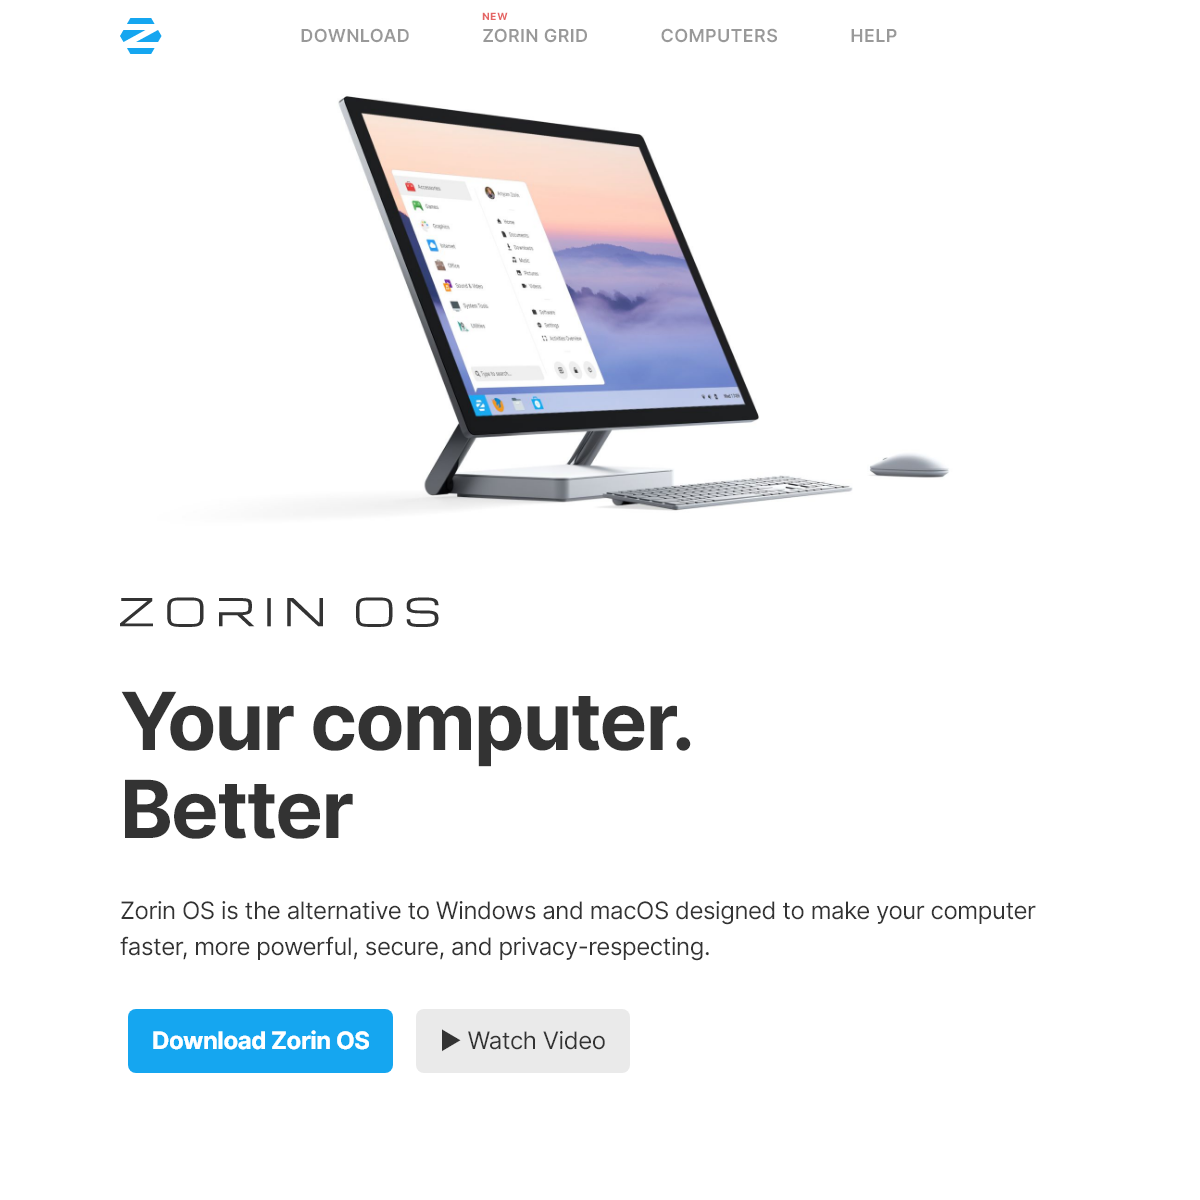 Zorin OS - Your Computer. Better.